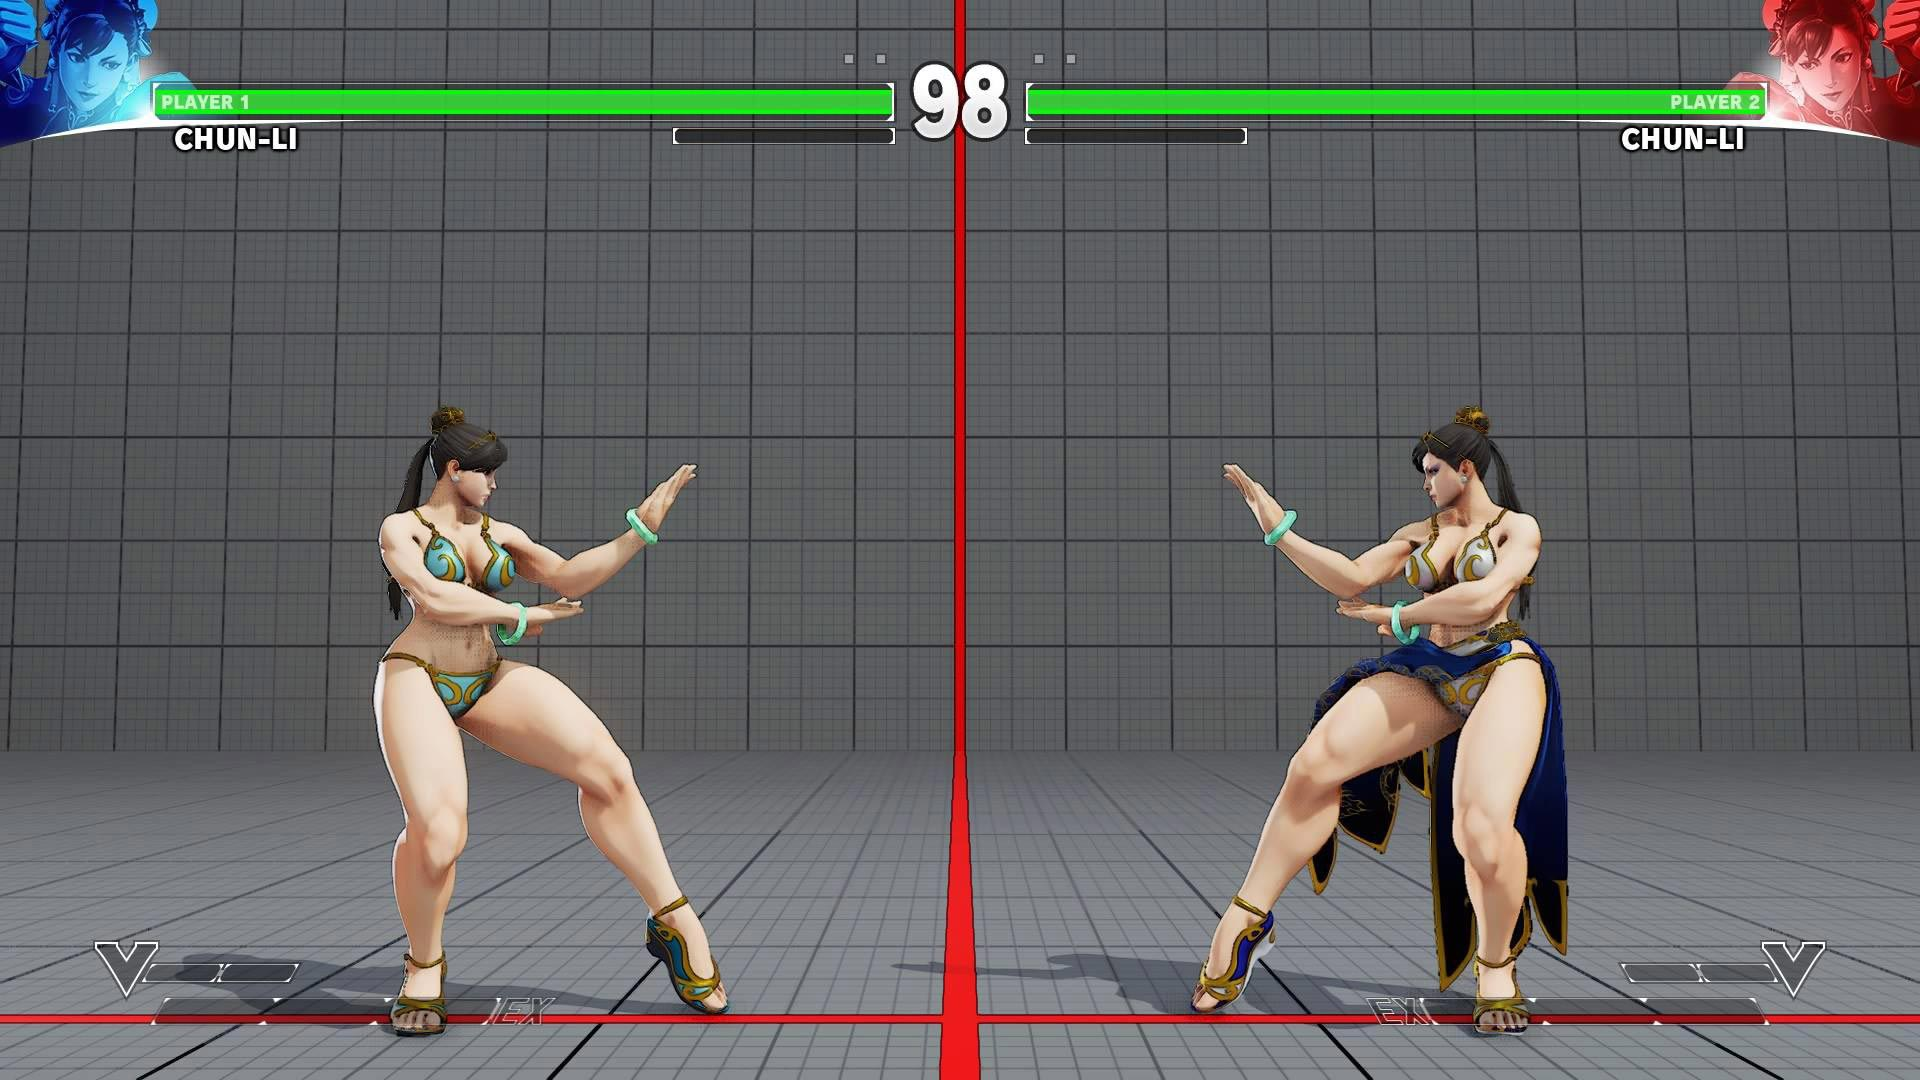 Chun-Li's Street Fighter 5 wardrobe 4 out of 13 image gallery